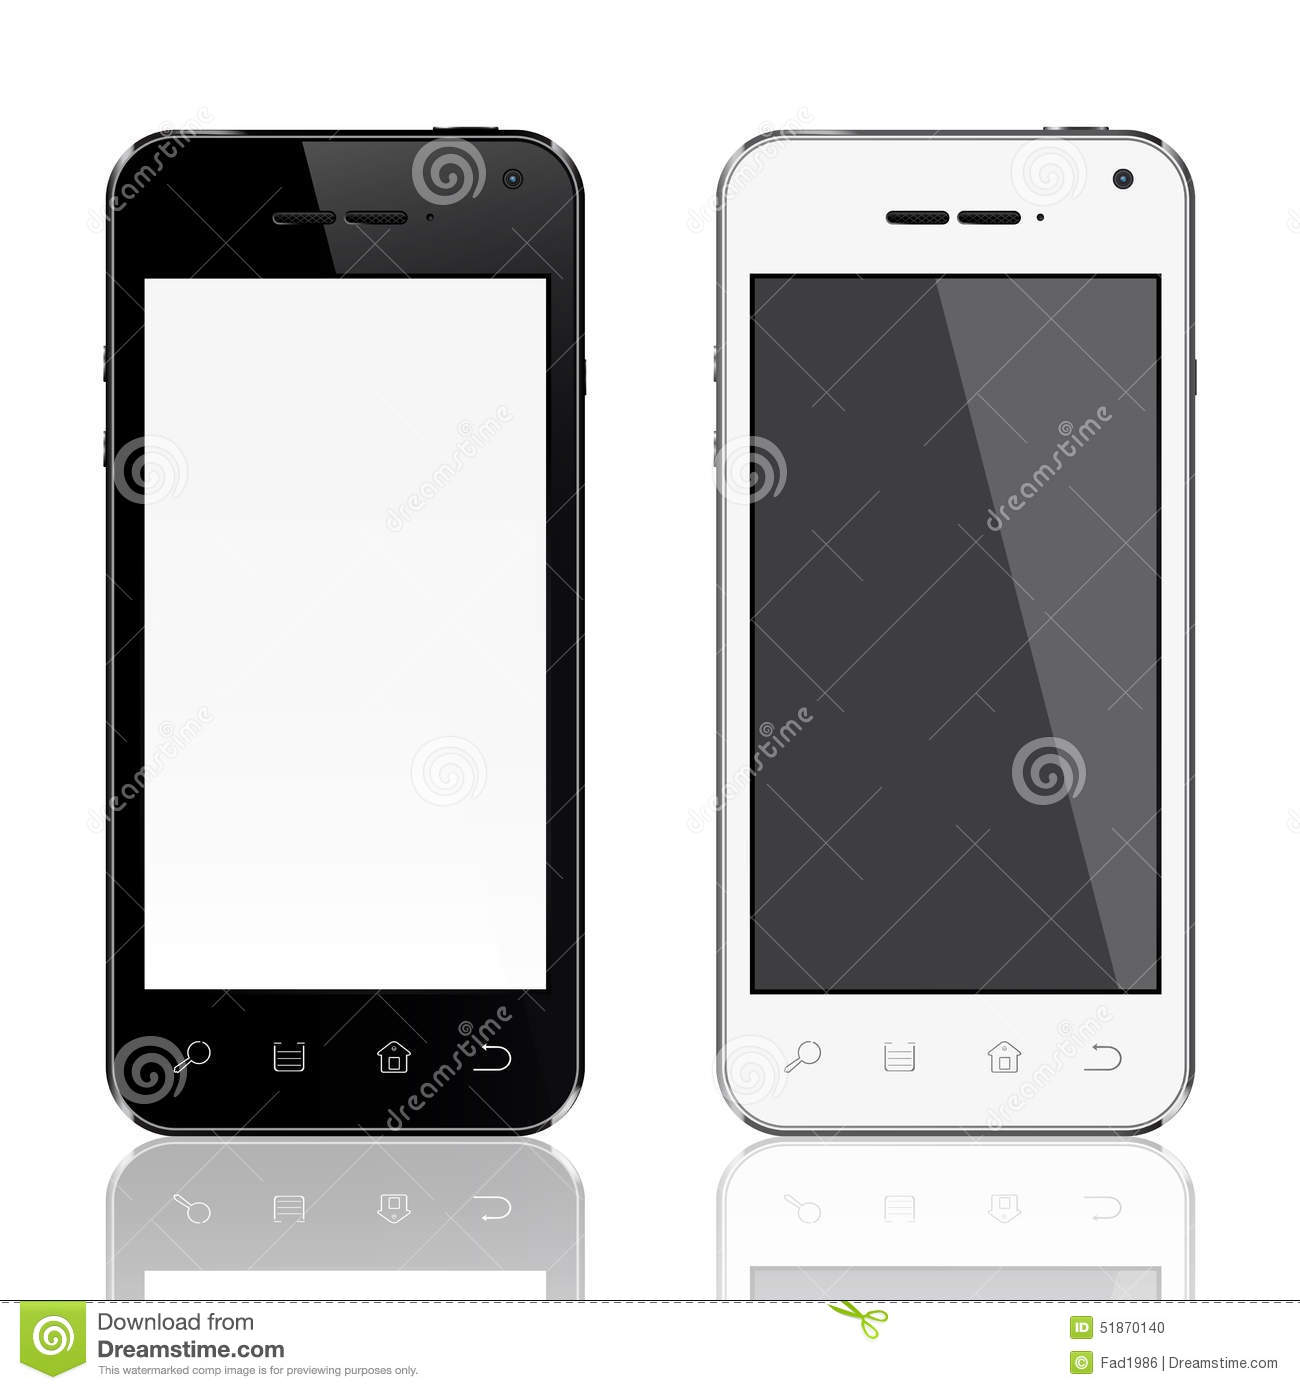 Realistic Mobile Phone Template Stock Illustration - Image: 51870140